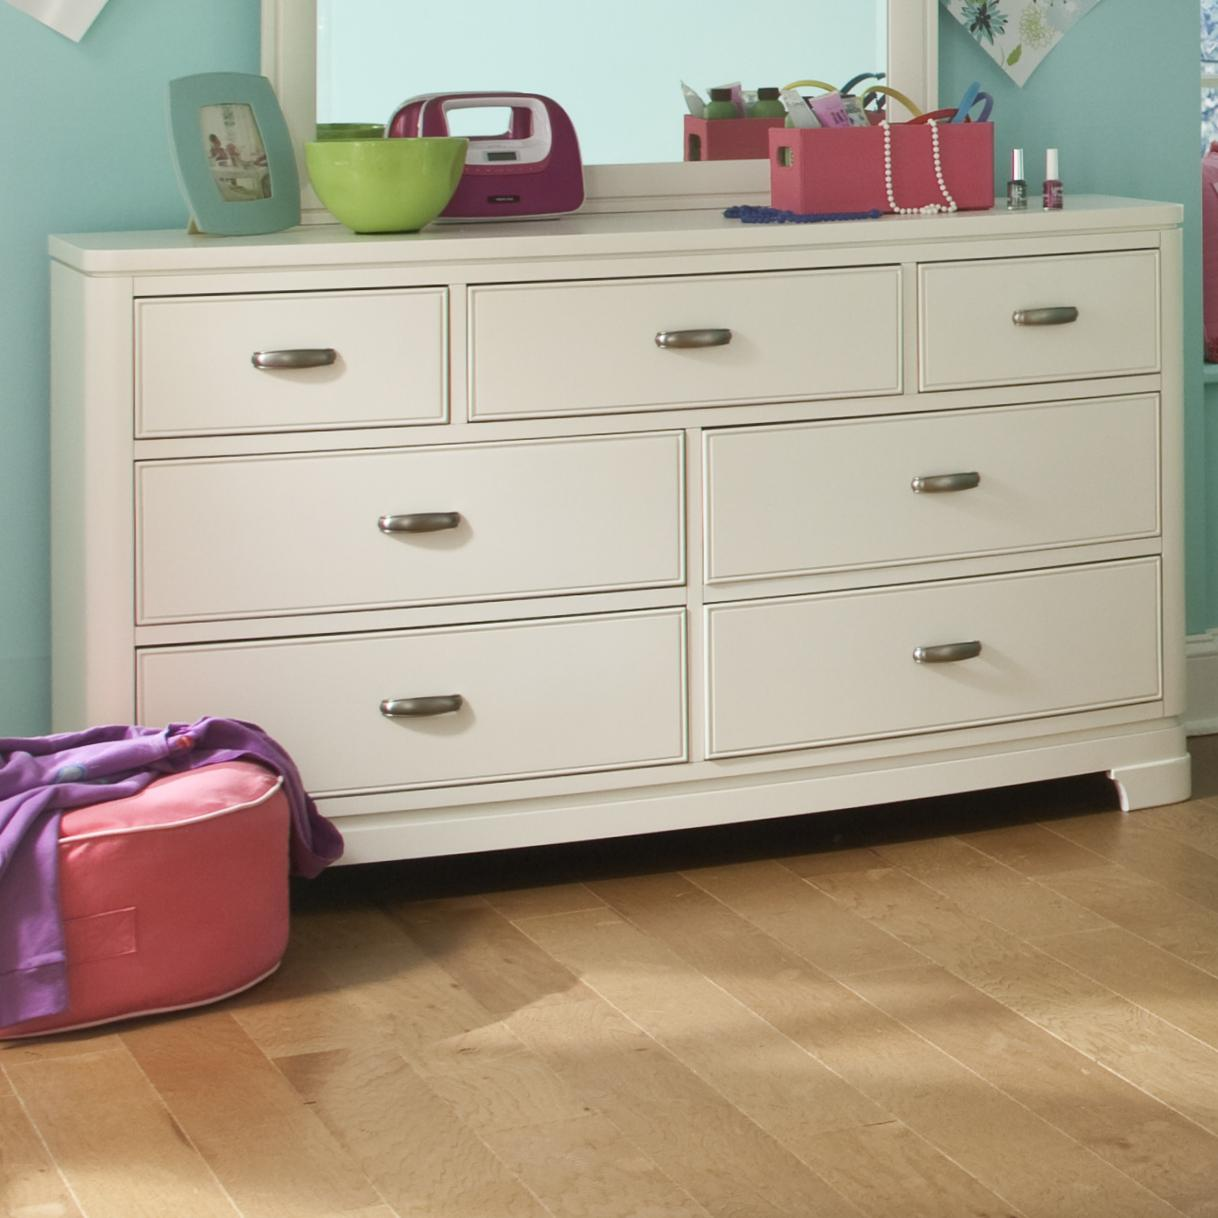 Legacy Classic Kids Park City White Dresser (7 Drawers) - Item Number: 9910-1100